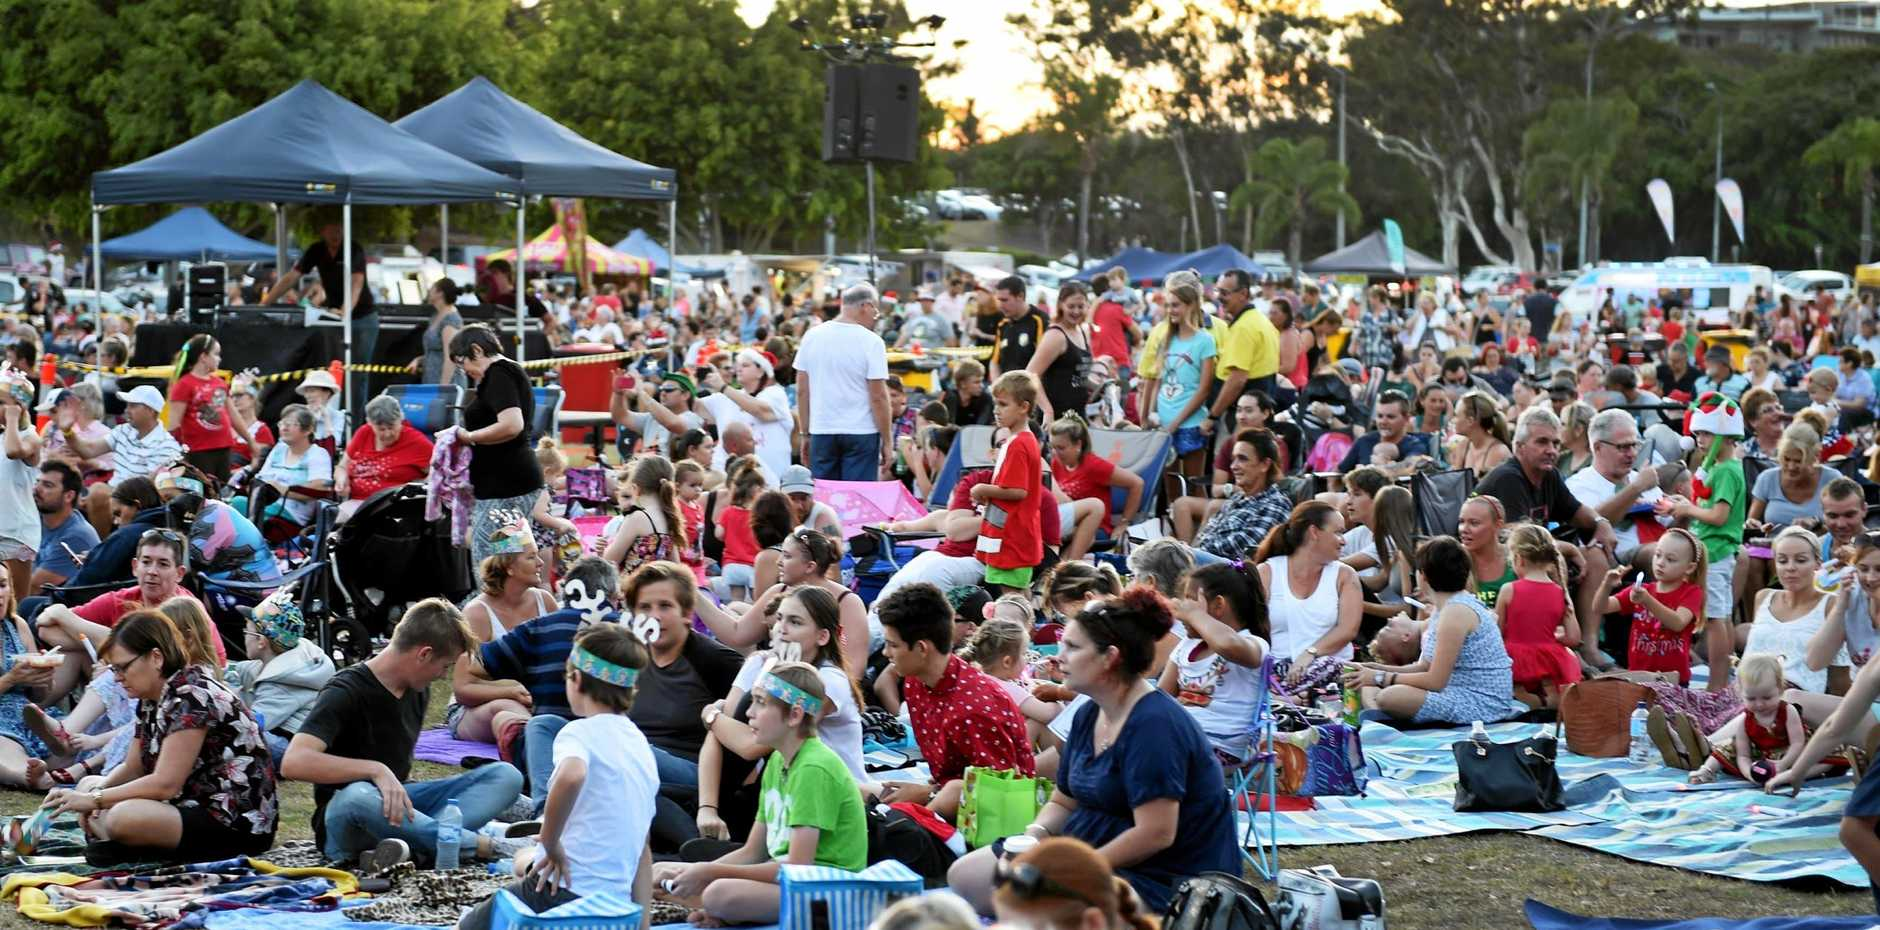 NO CAROLS: Hervey Bay RSL Carols by Candlelight has been cancelled due to an impending deluge over the Fraser Coast this weekend.